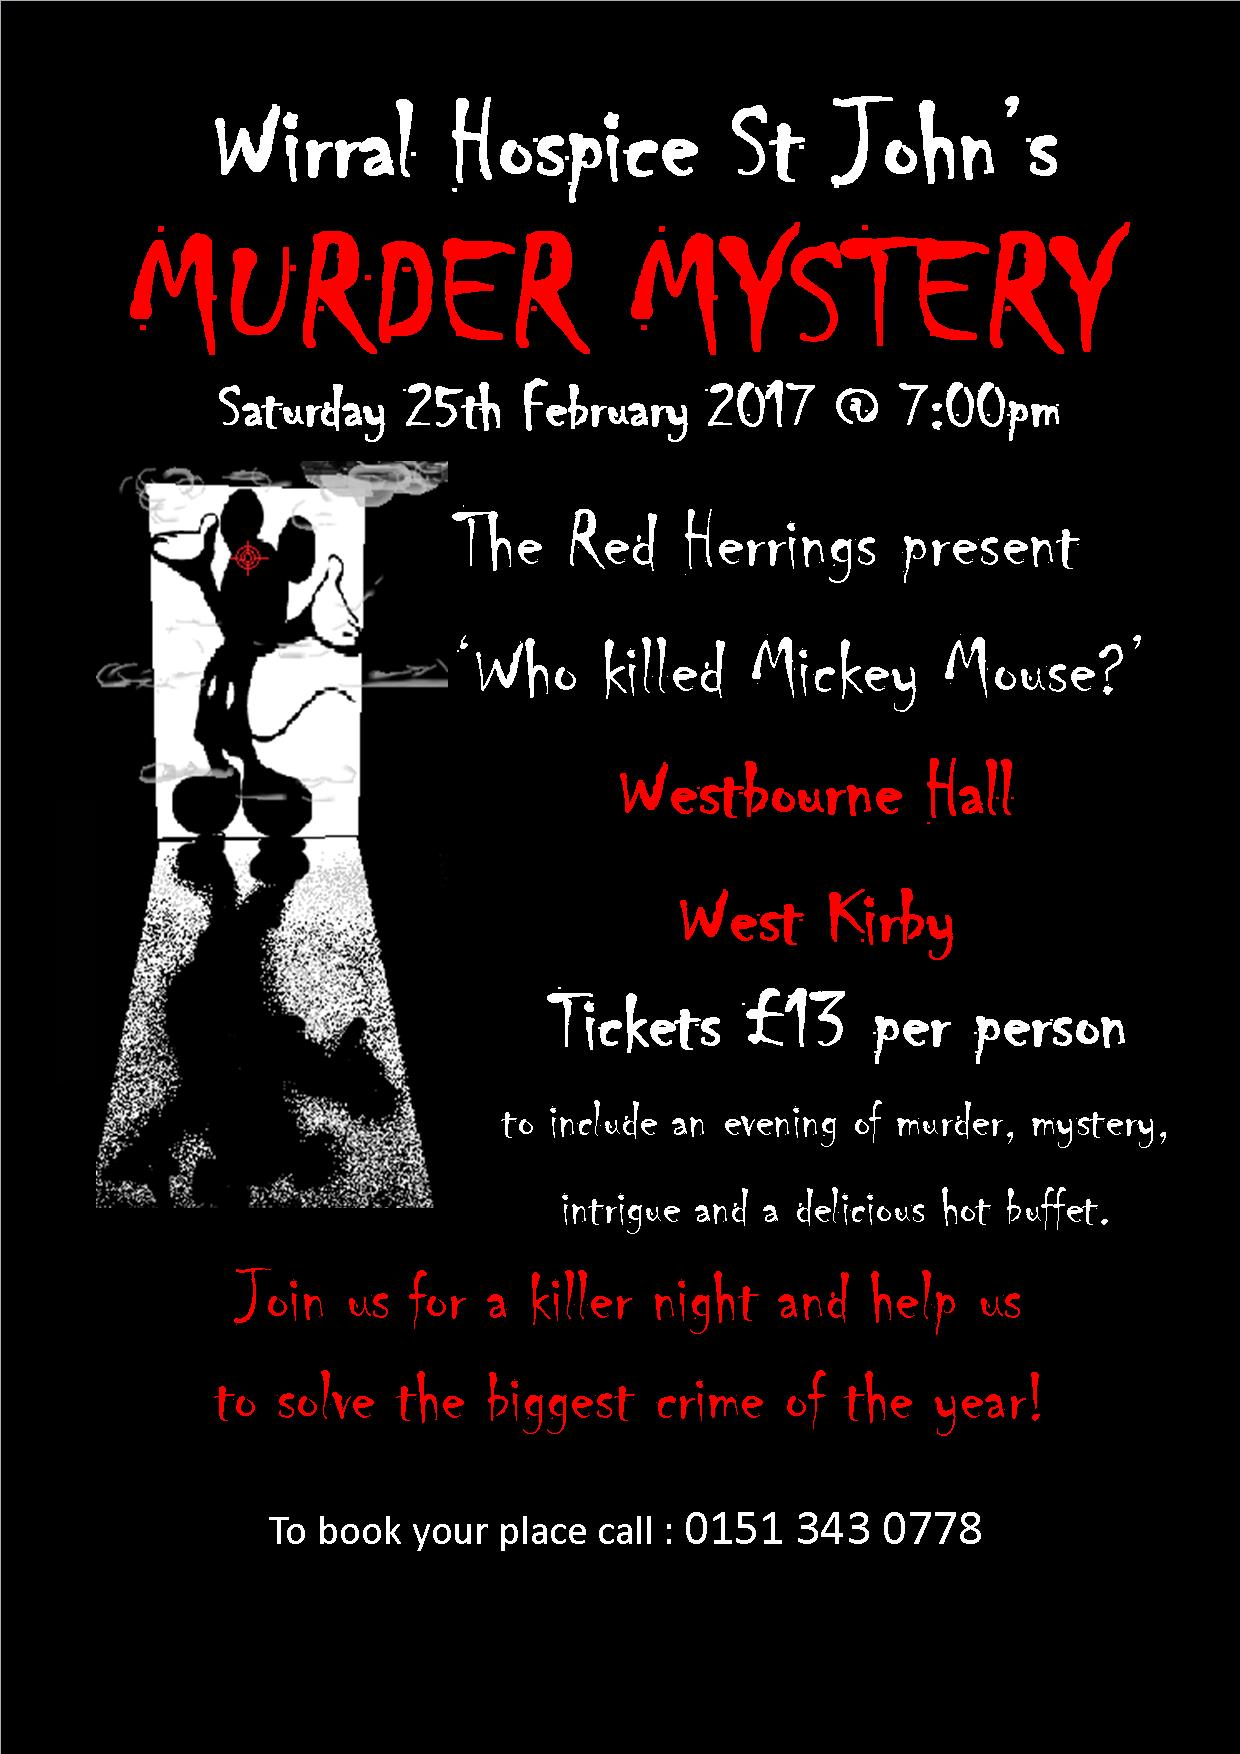 Wirral Hospice St John's Murder Mystery Evening